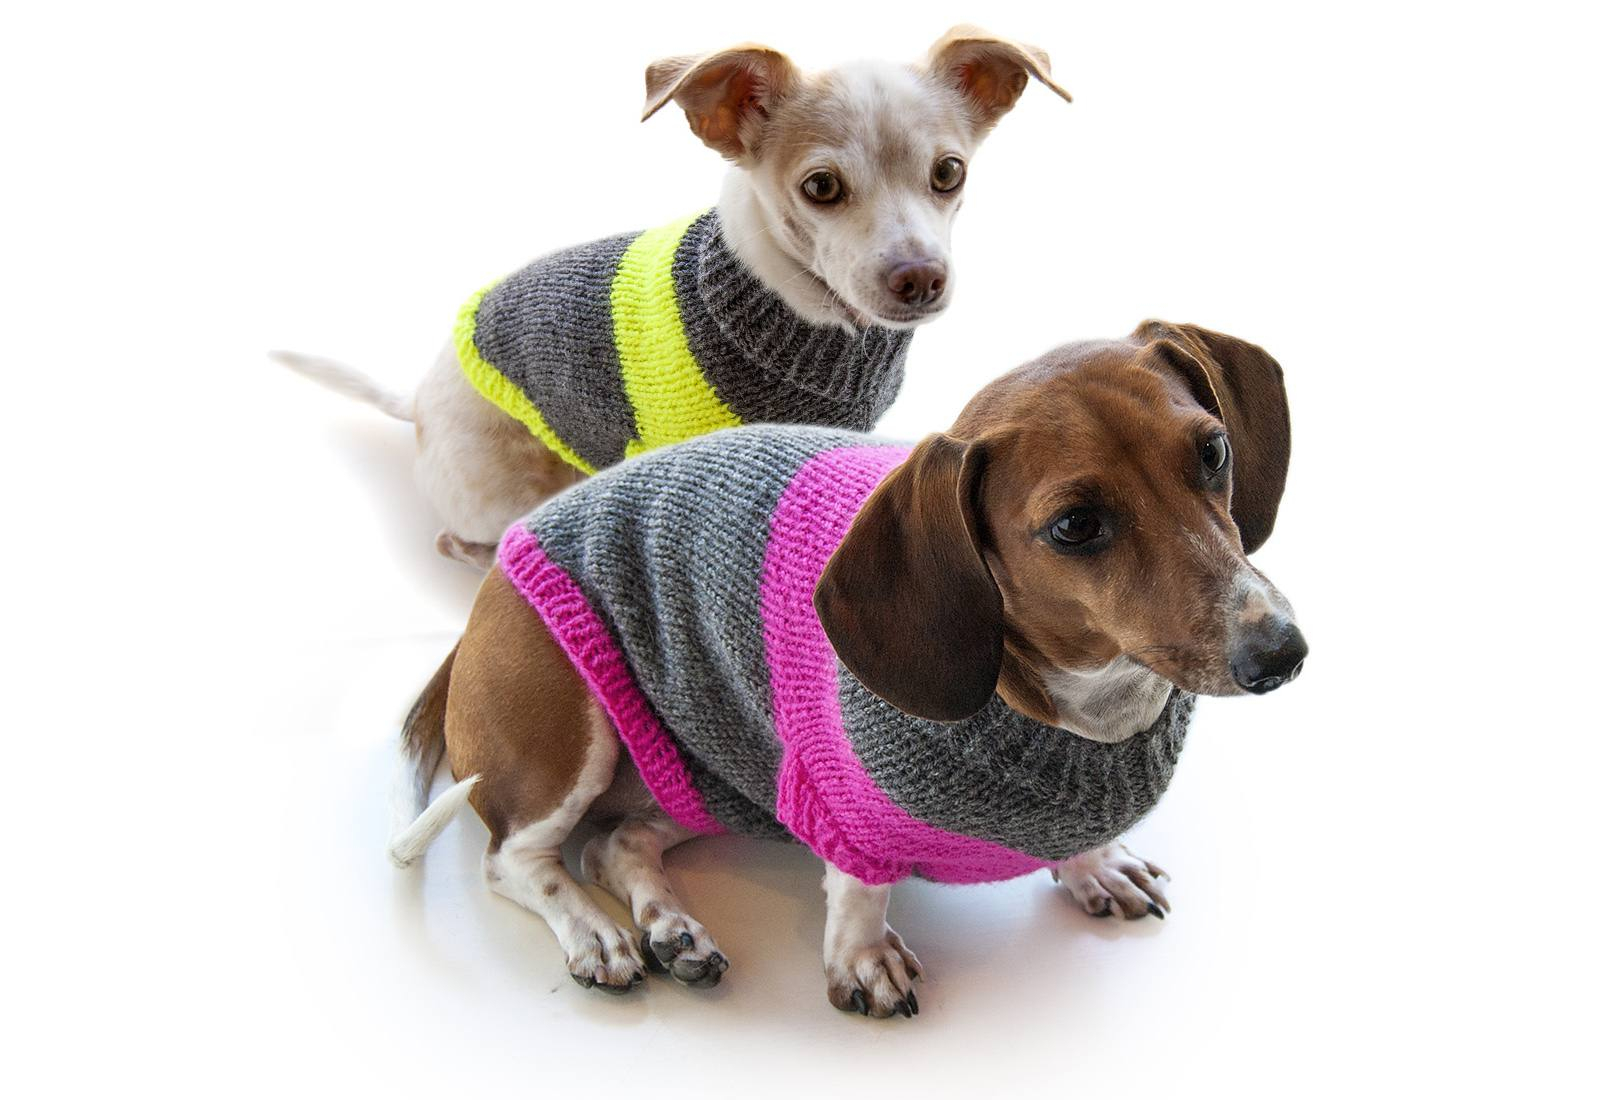 Knitted Dog Coat Pattern 12 Dog Sweaters And Other Knitting Patterns For Pups